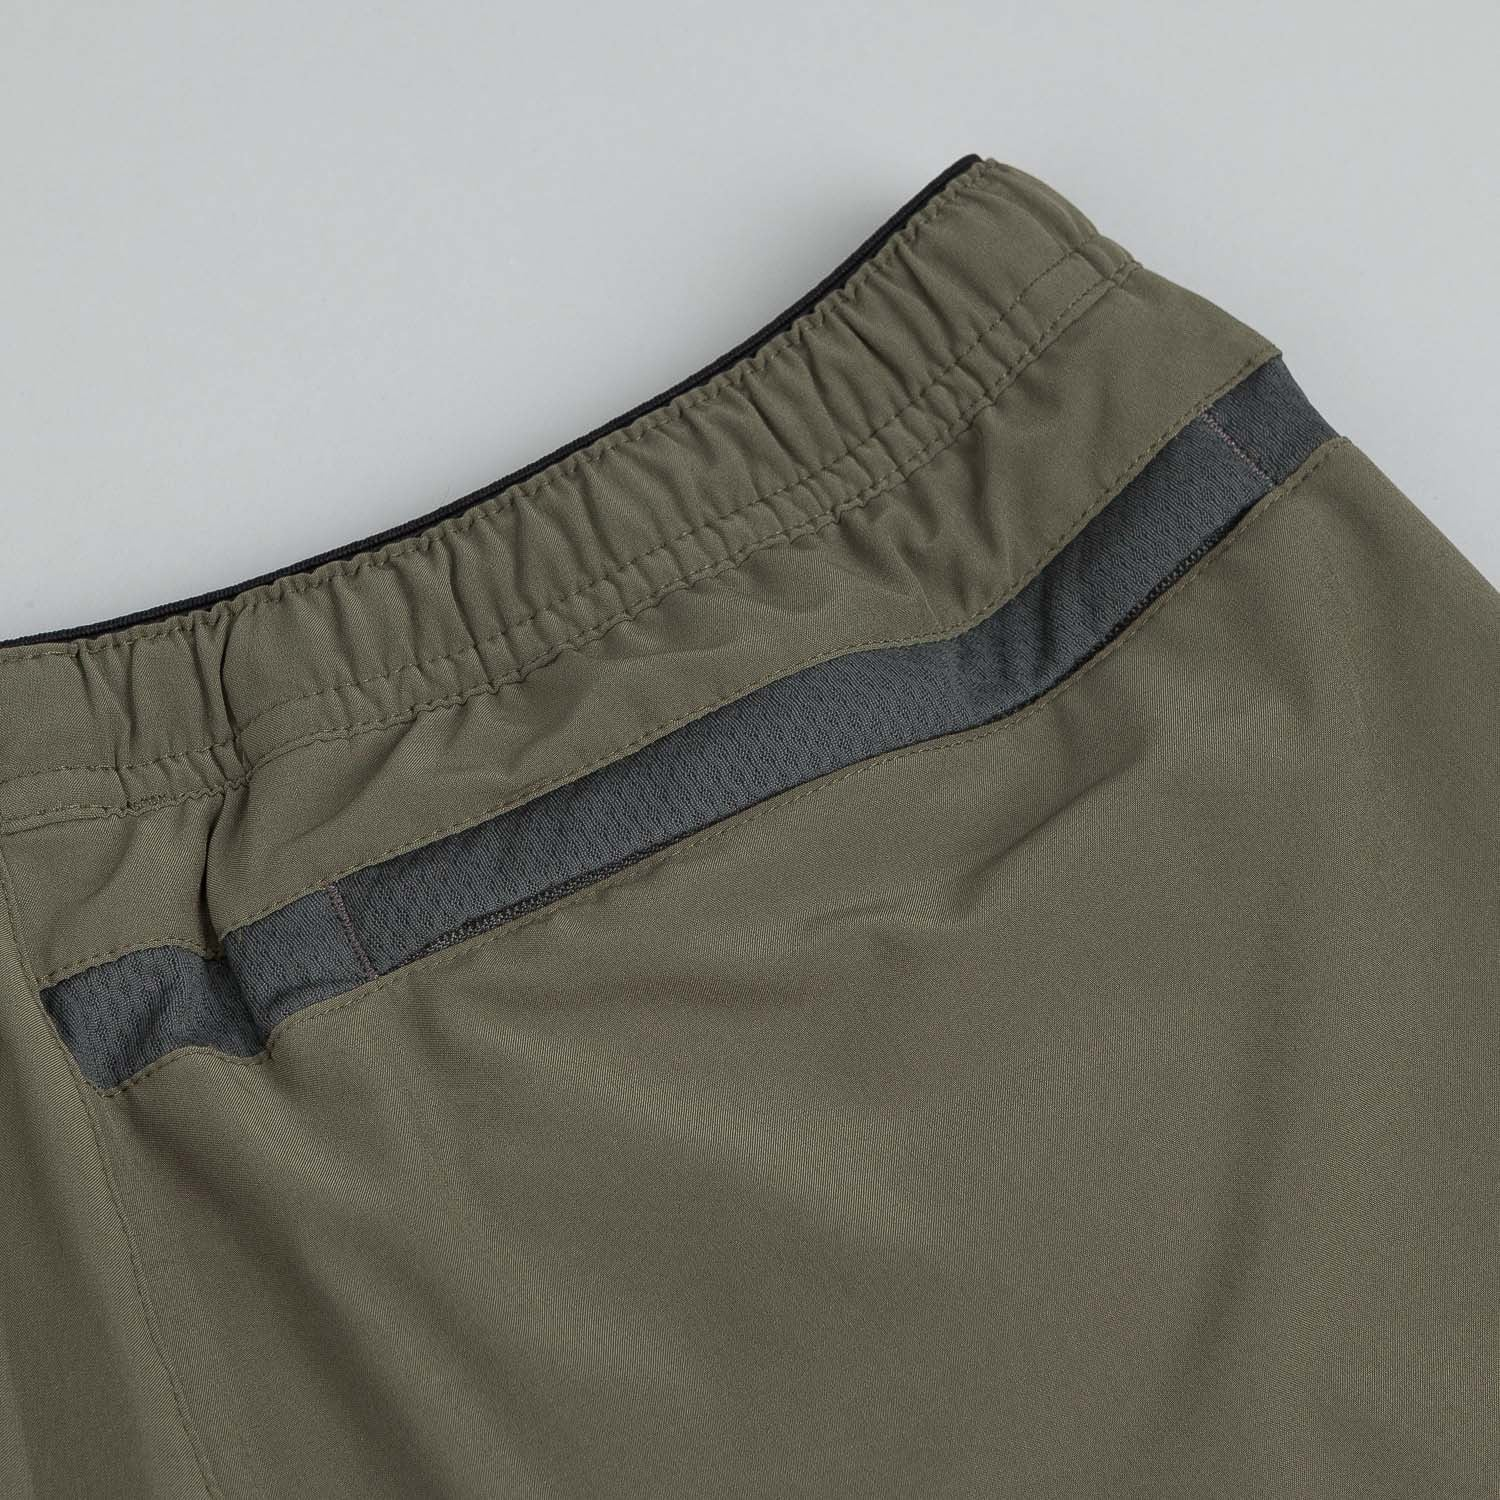 Patagonia Nine Trails Shorts - Basin Green